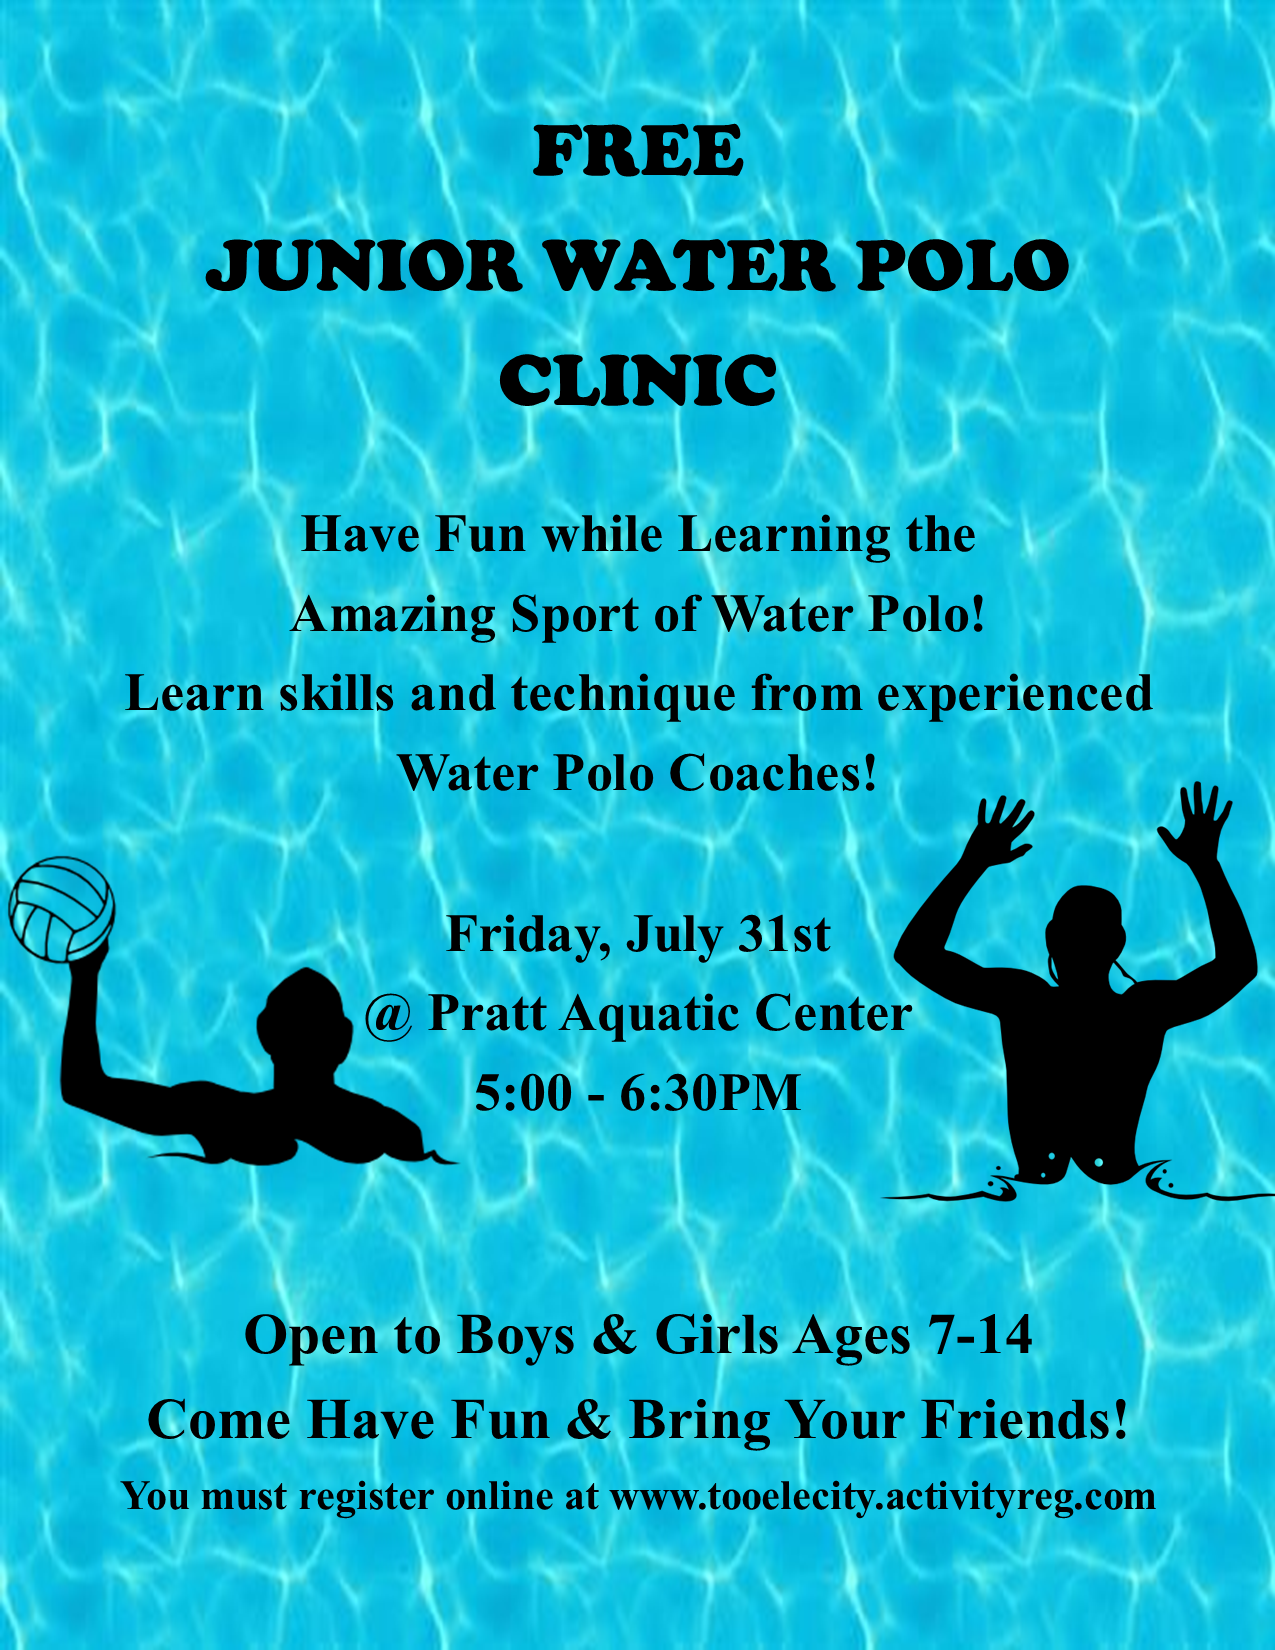 Junior Water Polo Clinic @ Pratt Aquatic Center